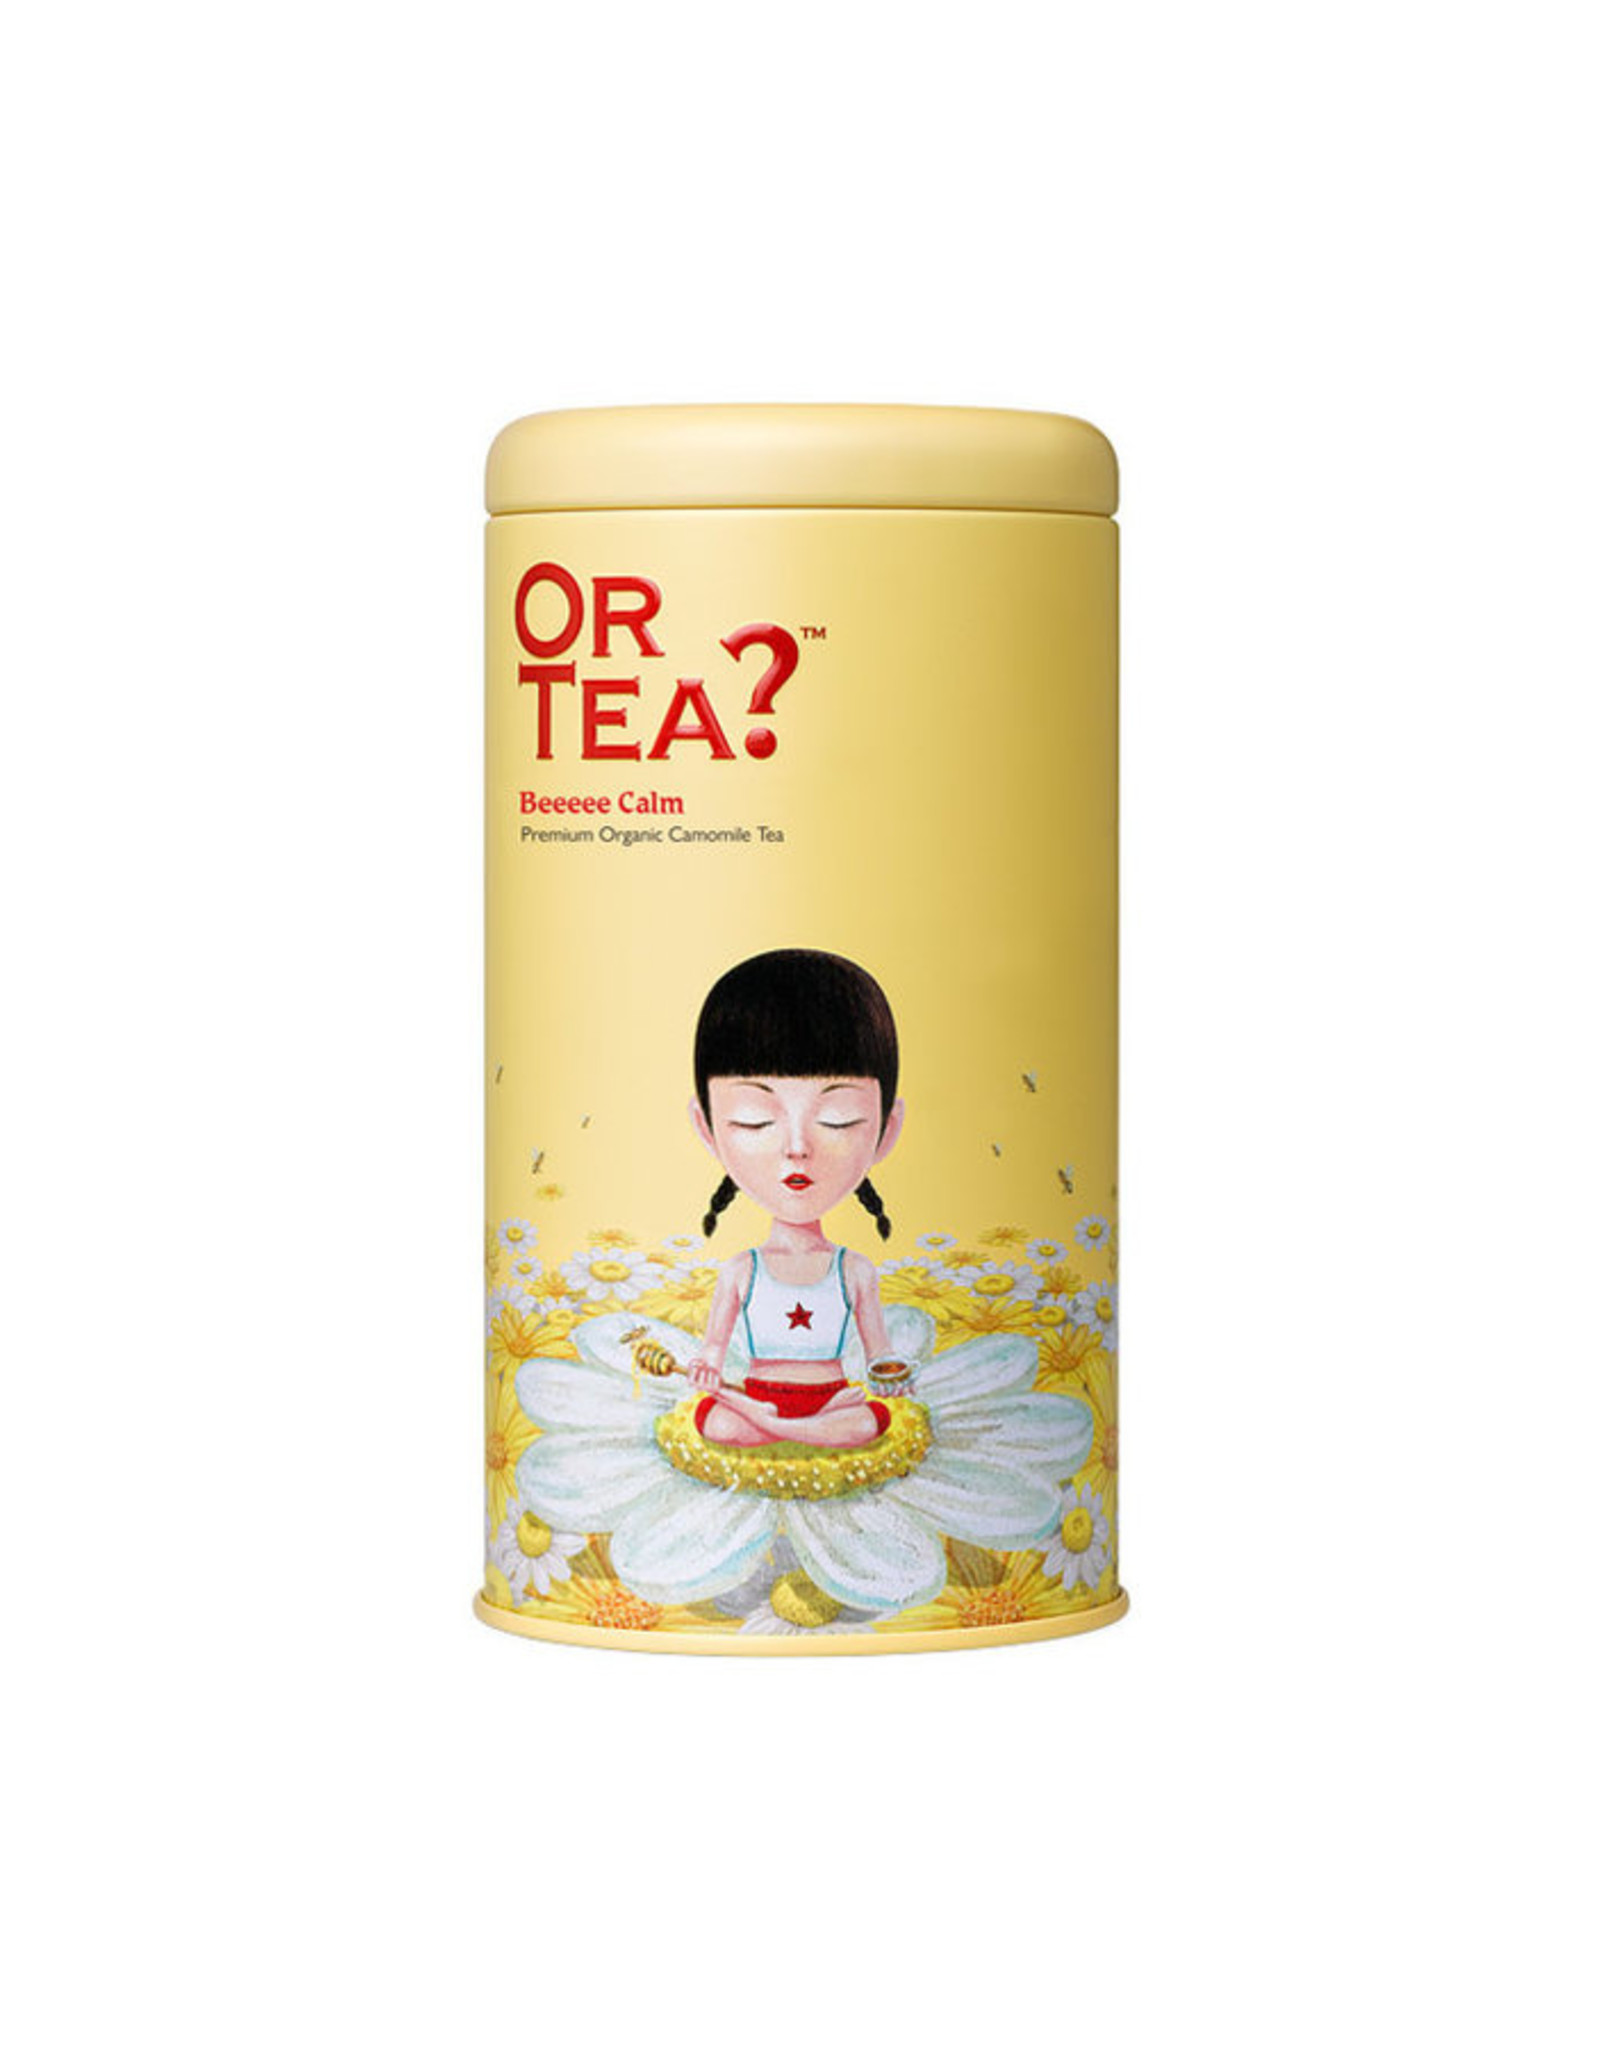 Or Tea? Organic Beeeee Calm - Tin Canister (Soft-Touch)